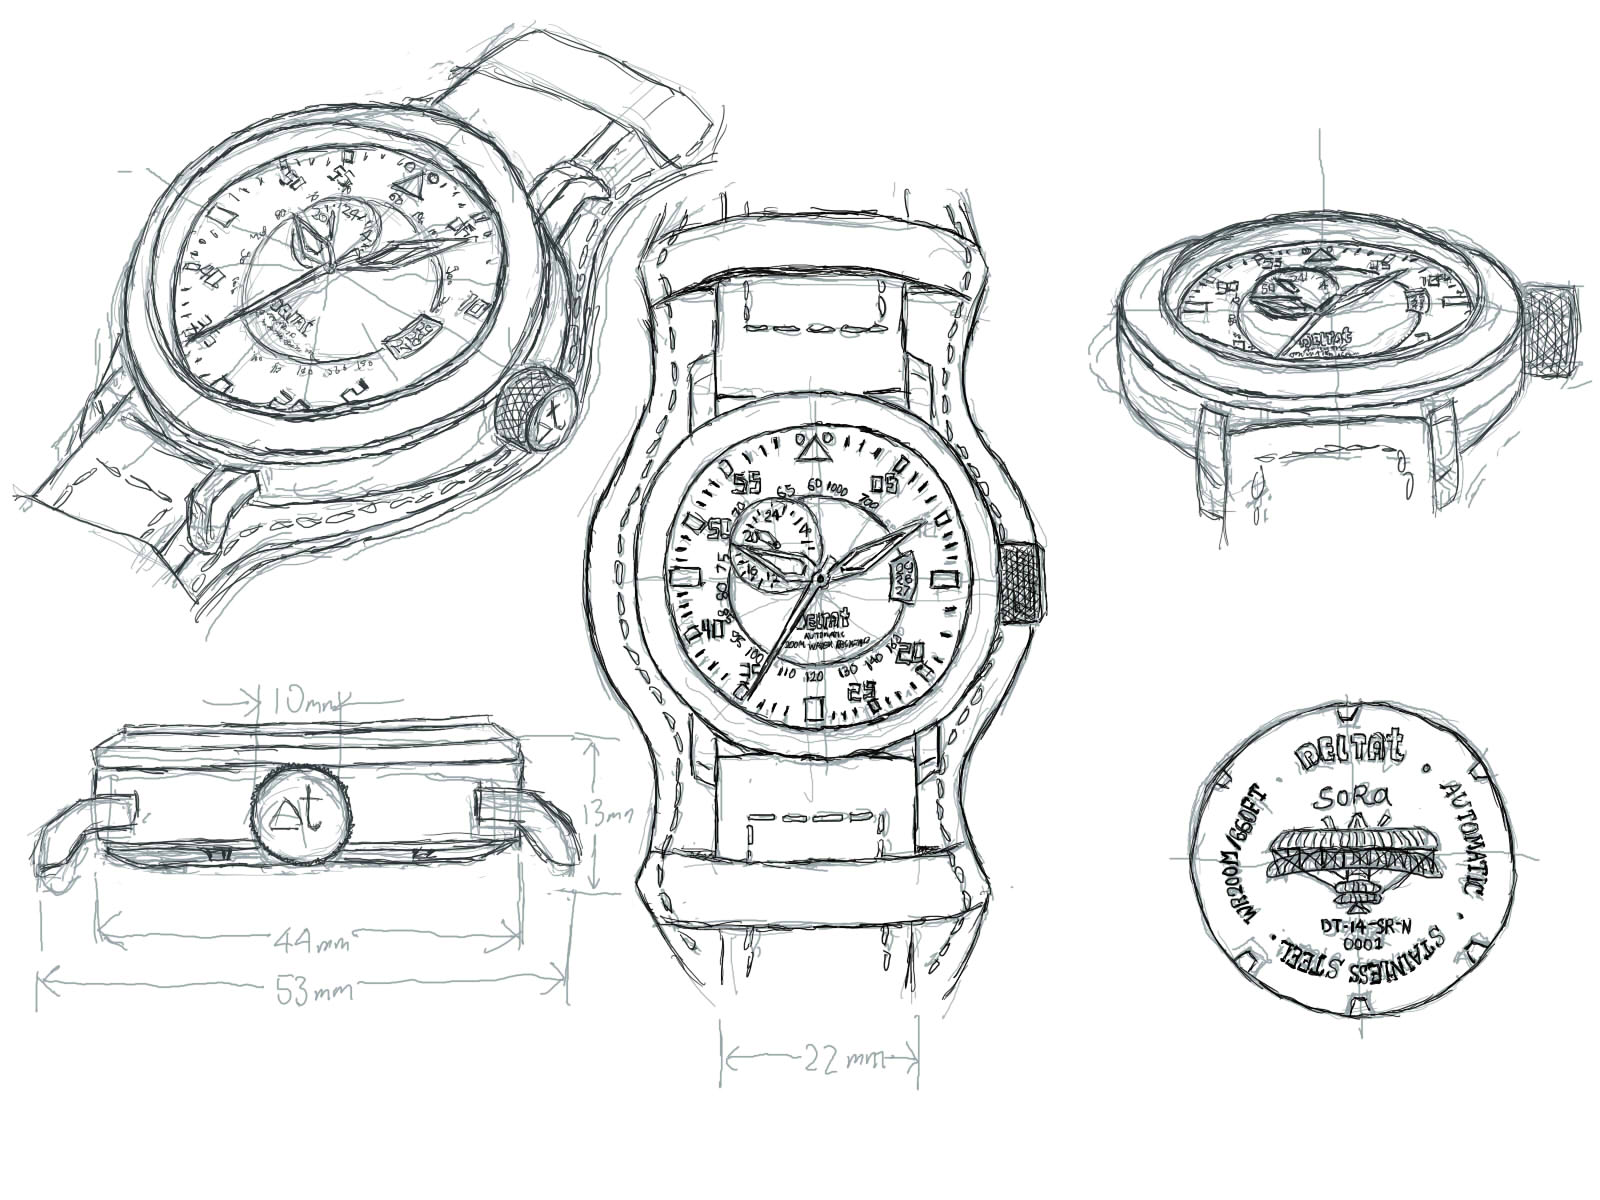 depositphotos drawing it device used with internal mechanical can the illustration watches of as be stock gears